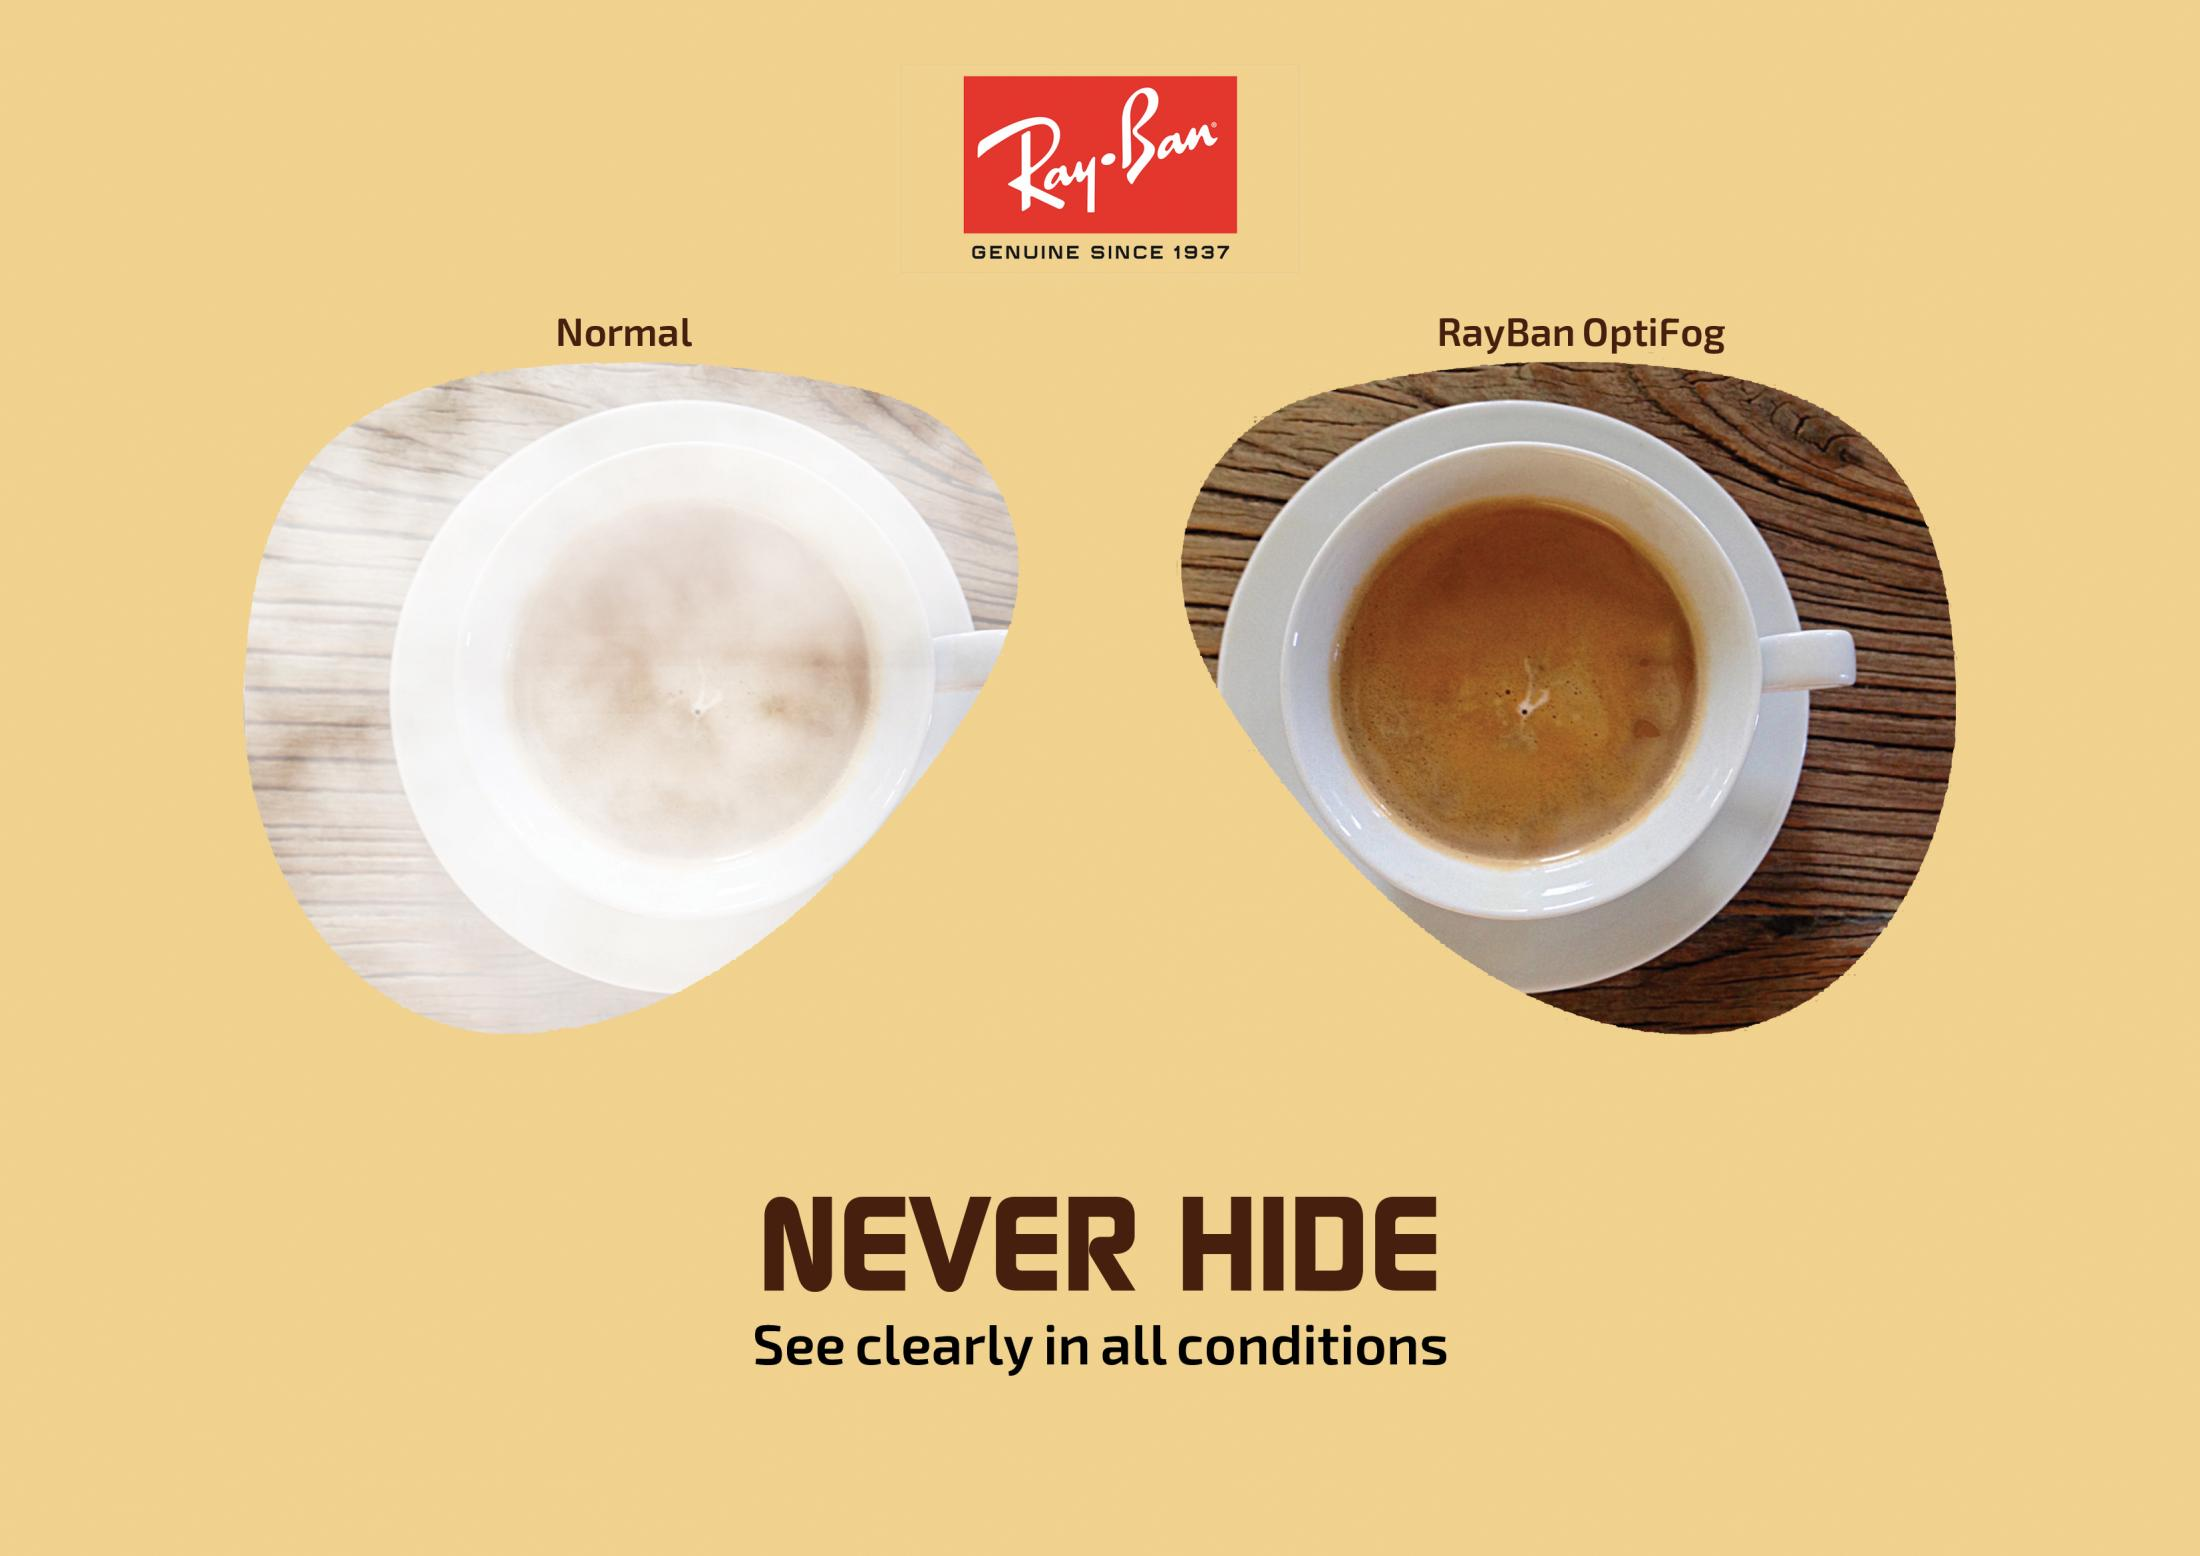 Ray-Ban Print Ad - Never Hide, 1